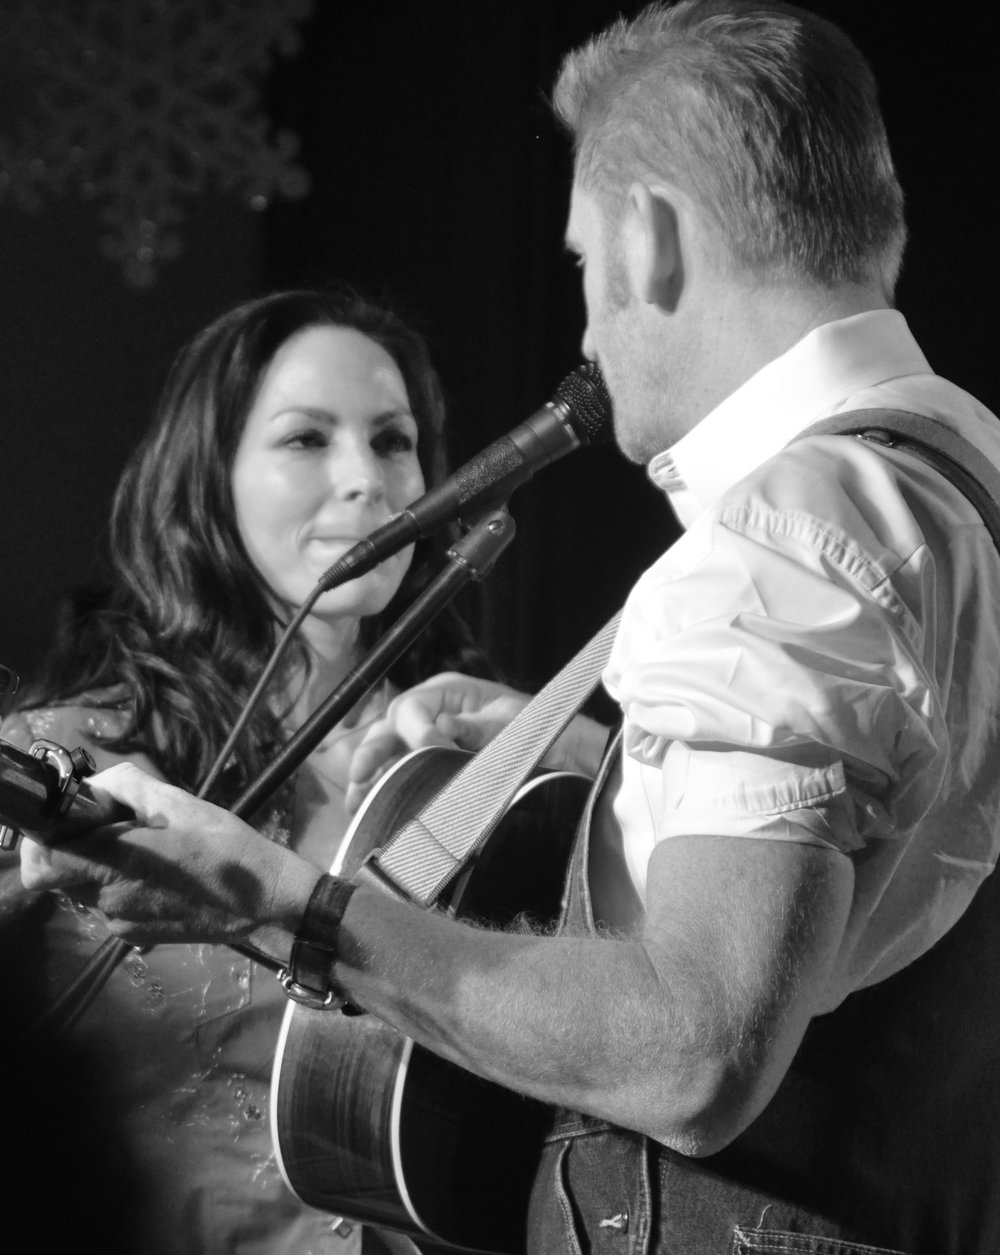 Joey + Rory – September 28, 2013 at their Farmhouse in Pottsville, TN